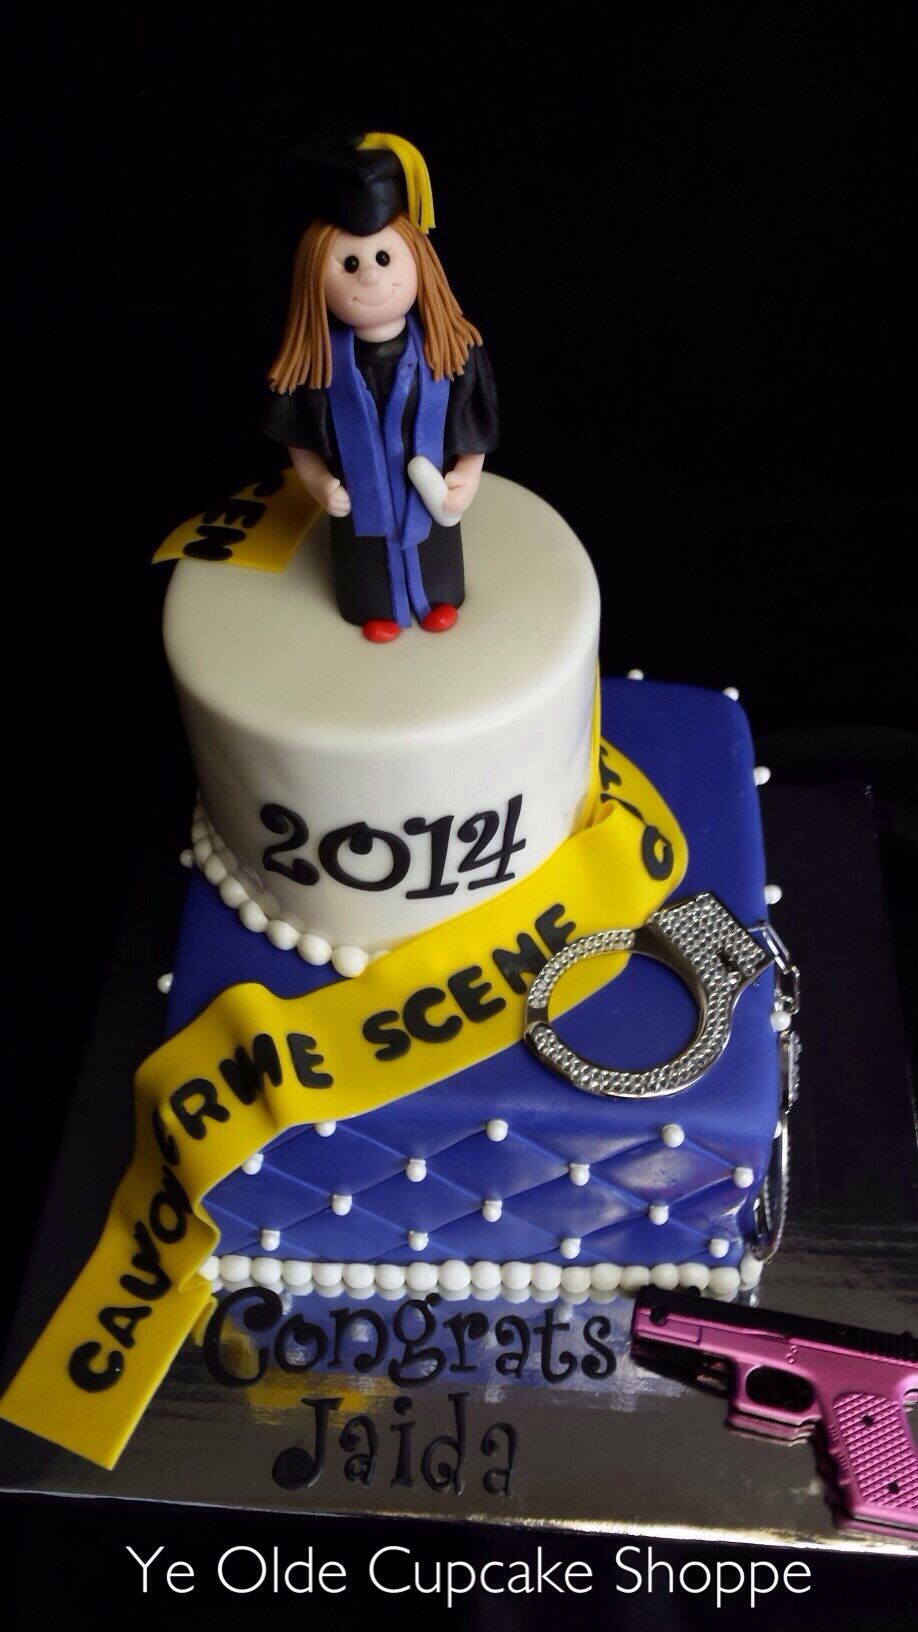 Criminal Justice Graduation Cake For When I Graduate From Tarleton With My Masters